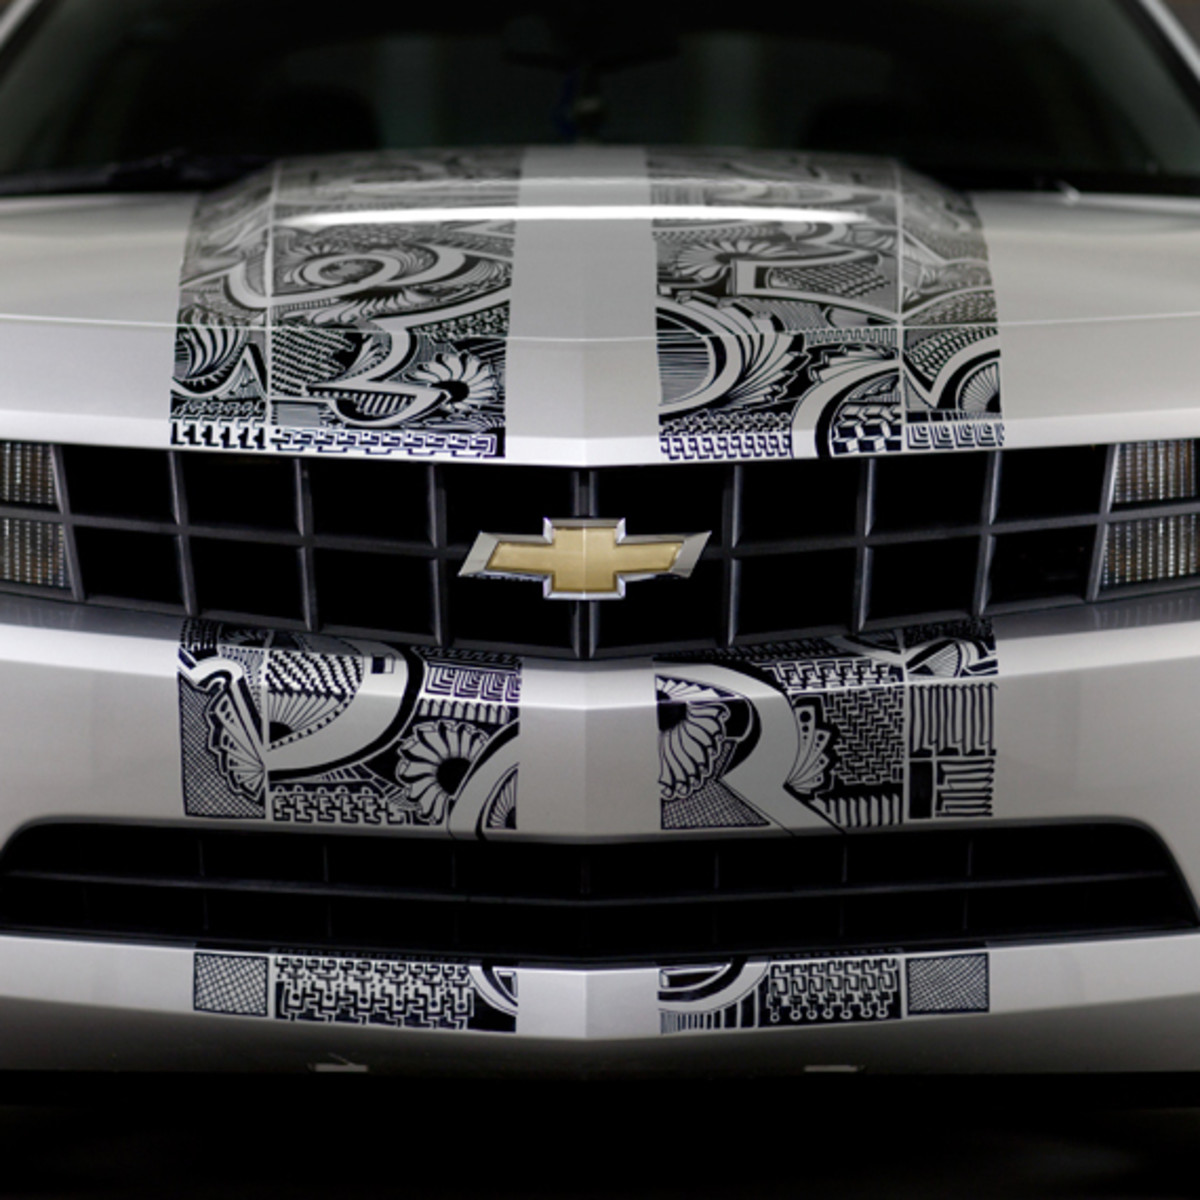 sharpie-camaro-chris-dunlop-01